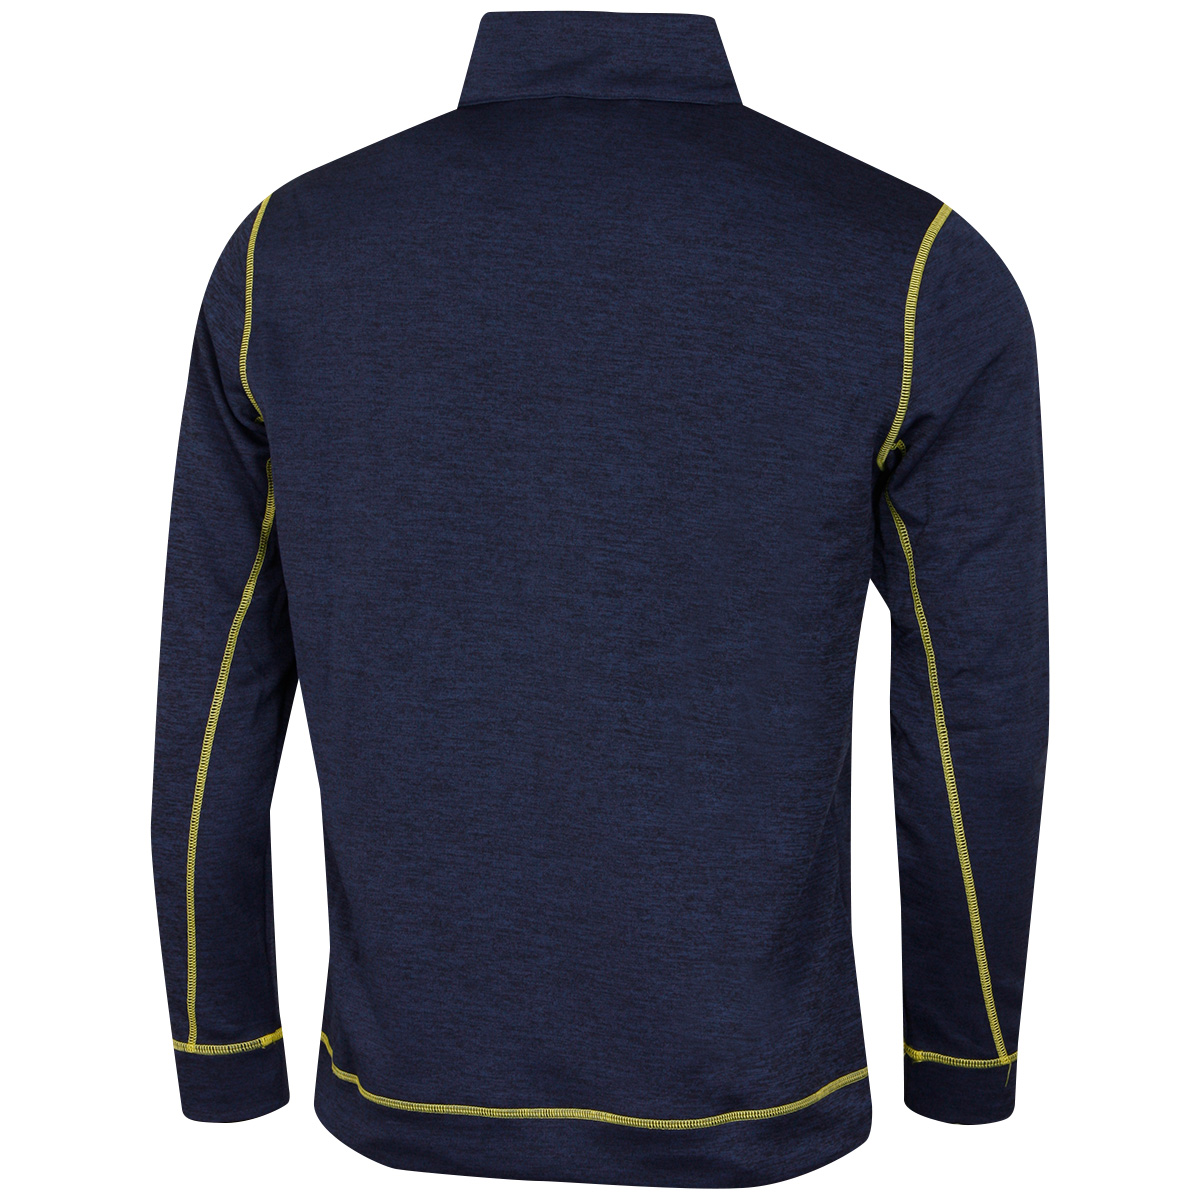 Puma-Golf-Mens-Go-Low-1-4-Zip-DryCell-Wicking-Chest-Pocket-Sweater-48-OFF-RRP thumbnail 5